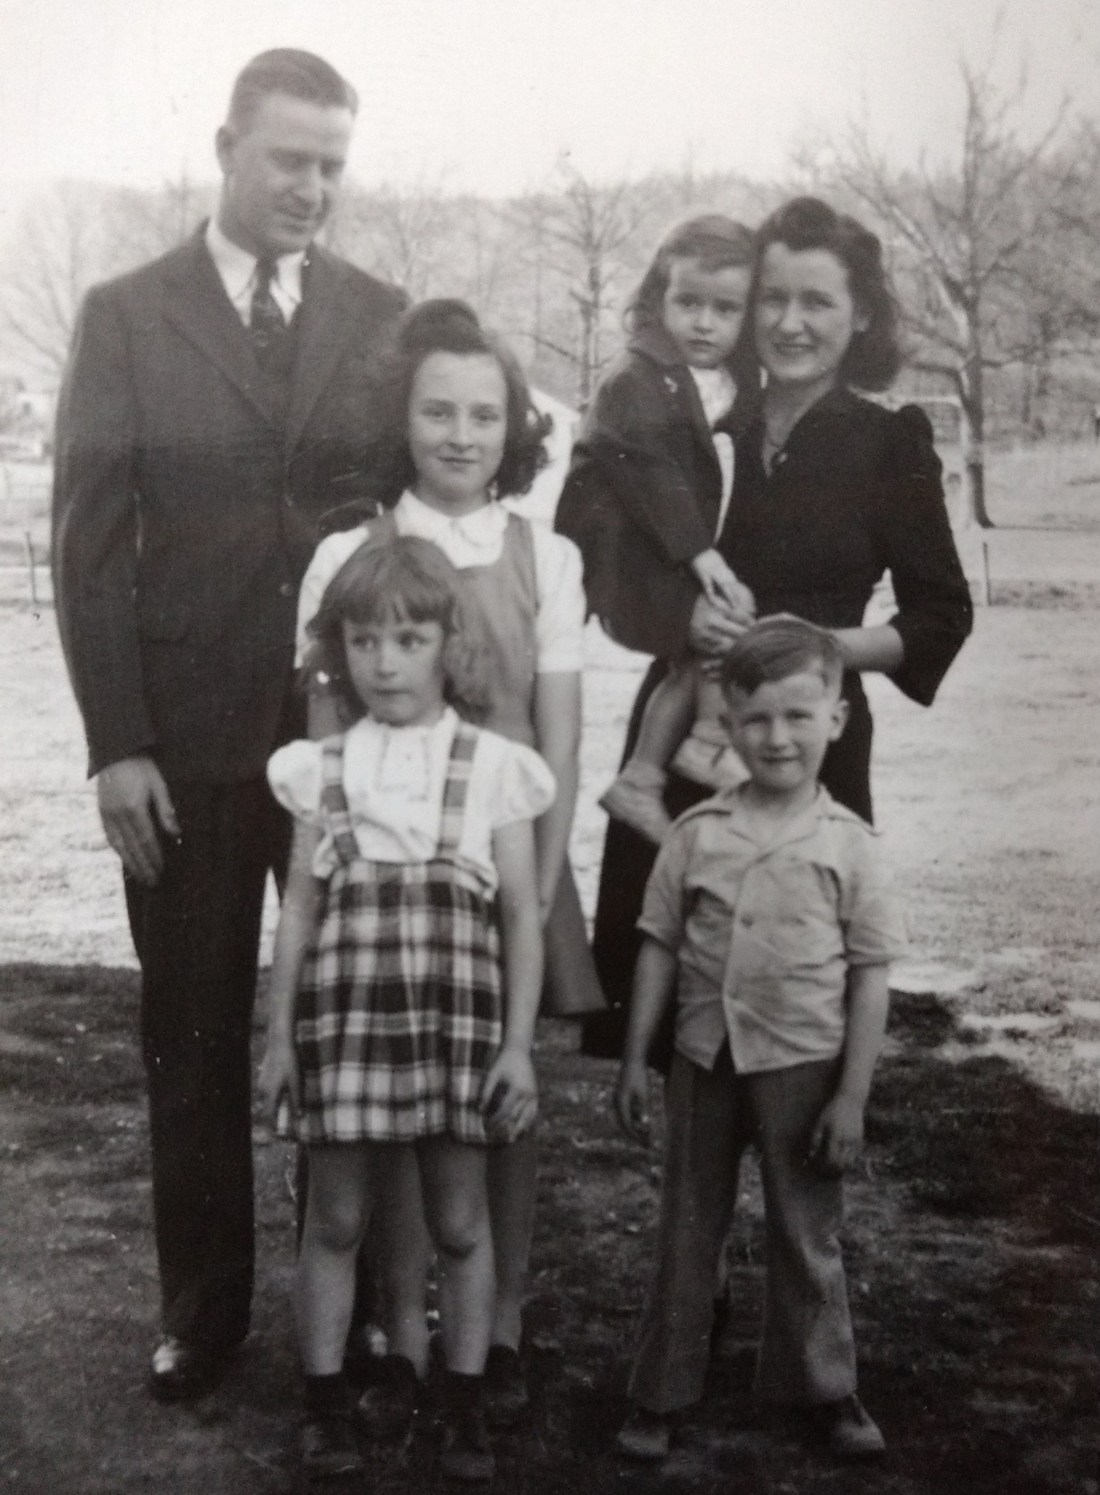 Clarence Carroll (Dad), Elizabeth (Mom), Jeanie, Nancy, Barbara (sisters) and Teddy